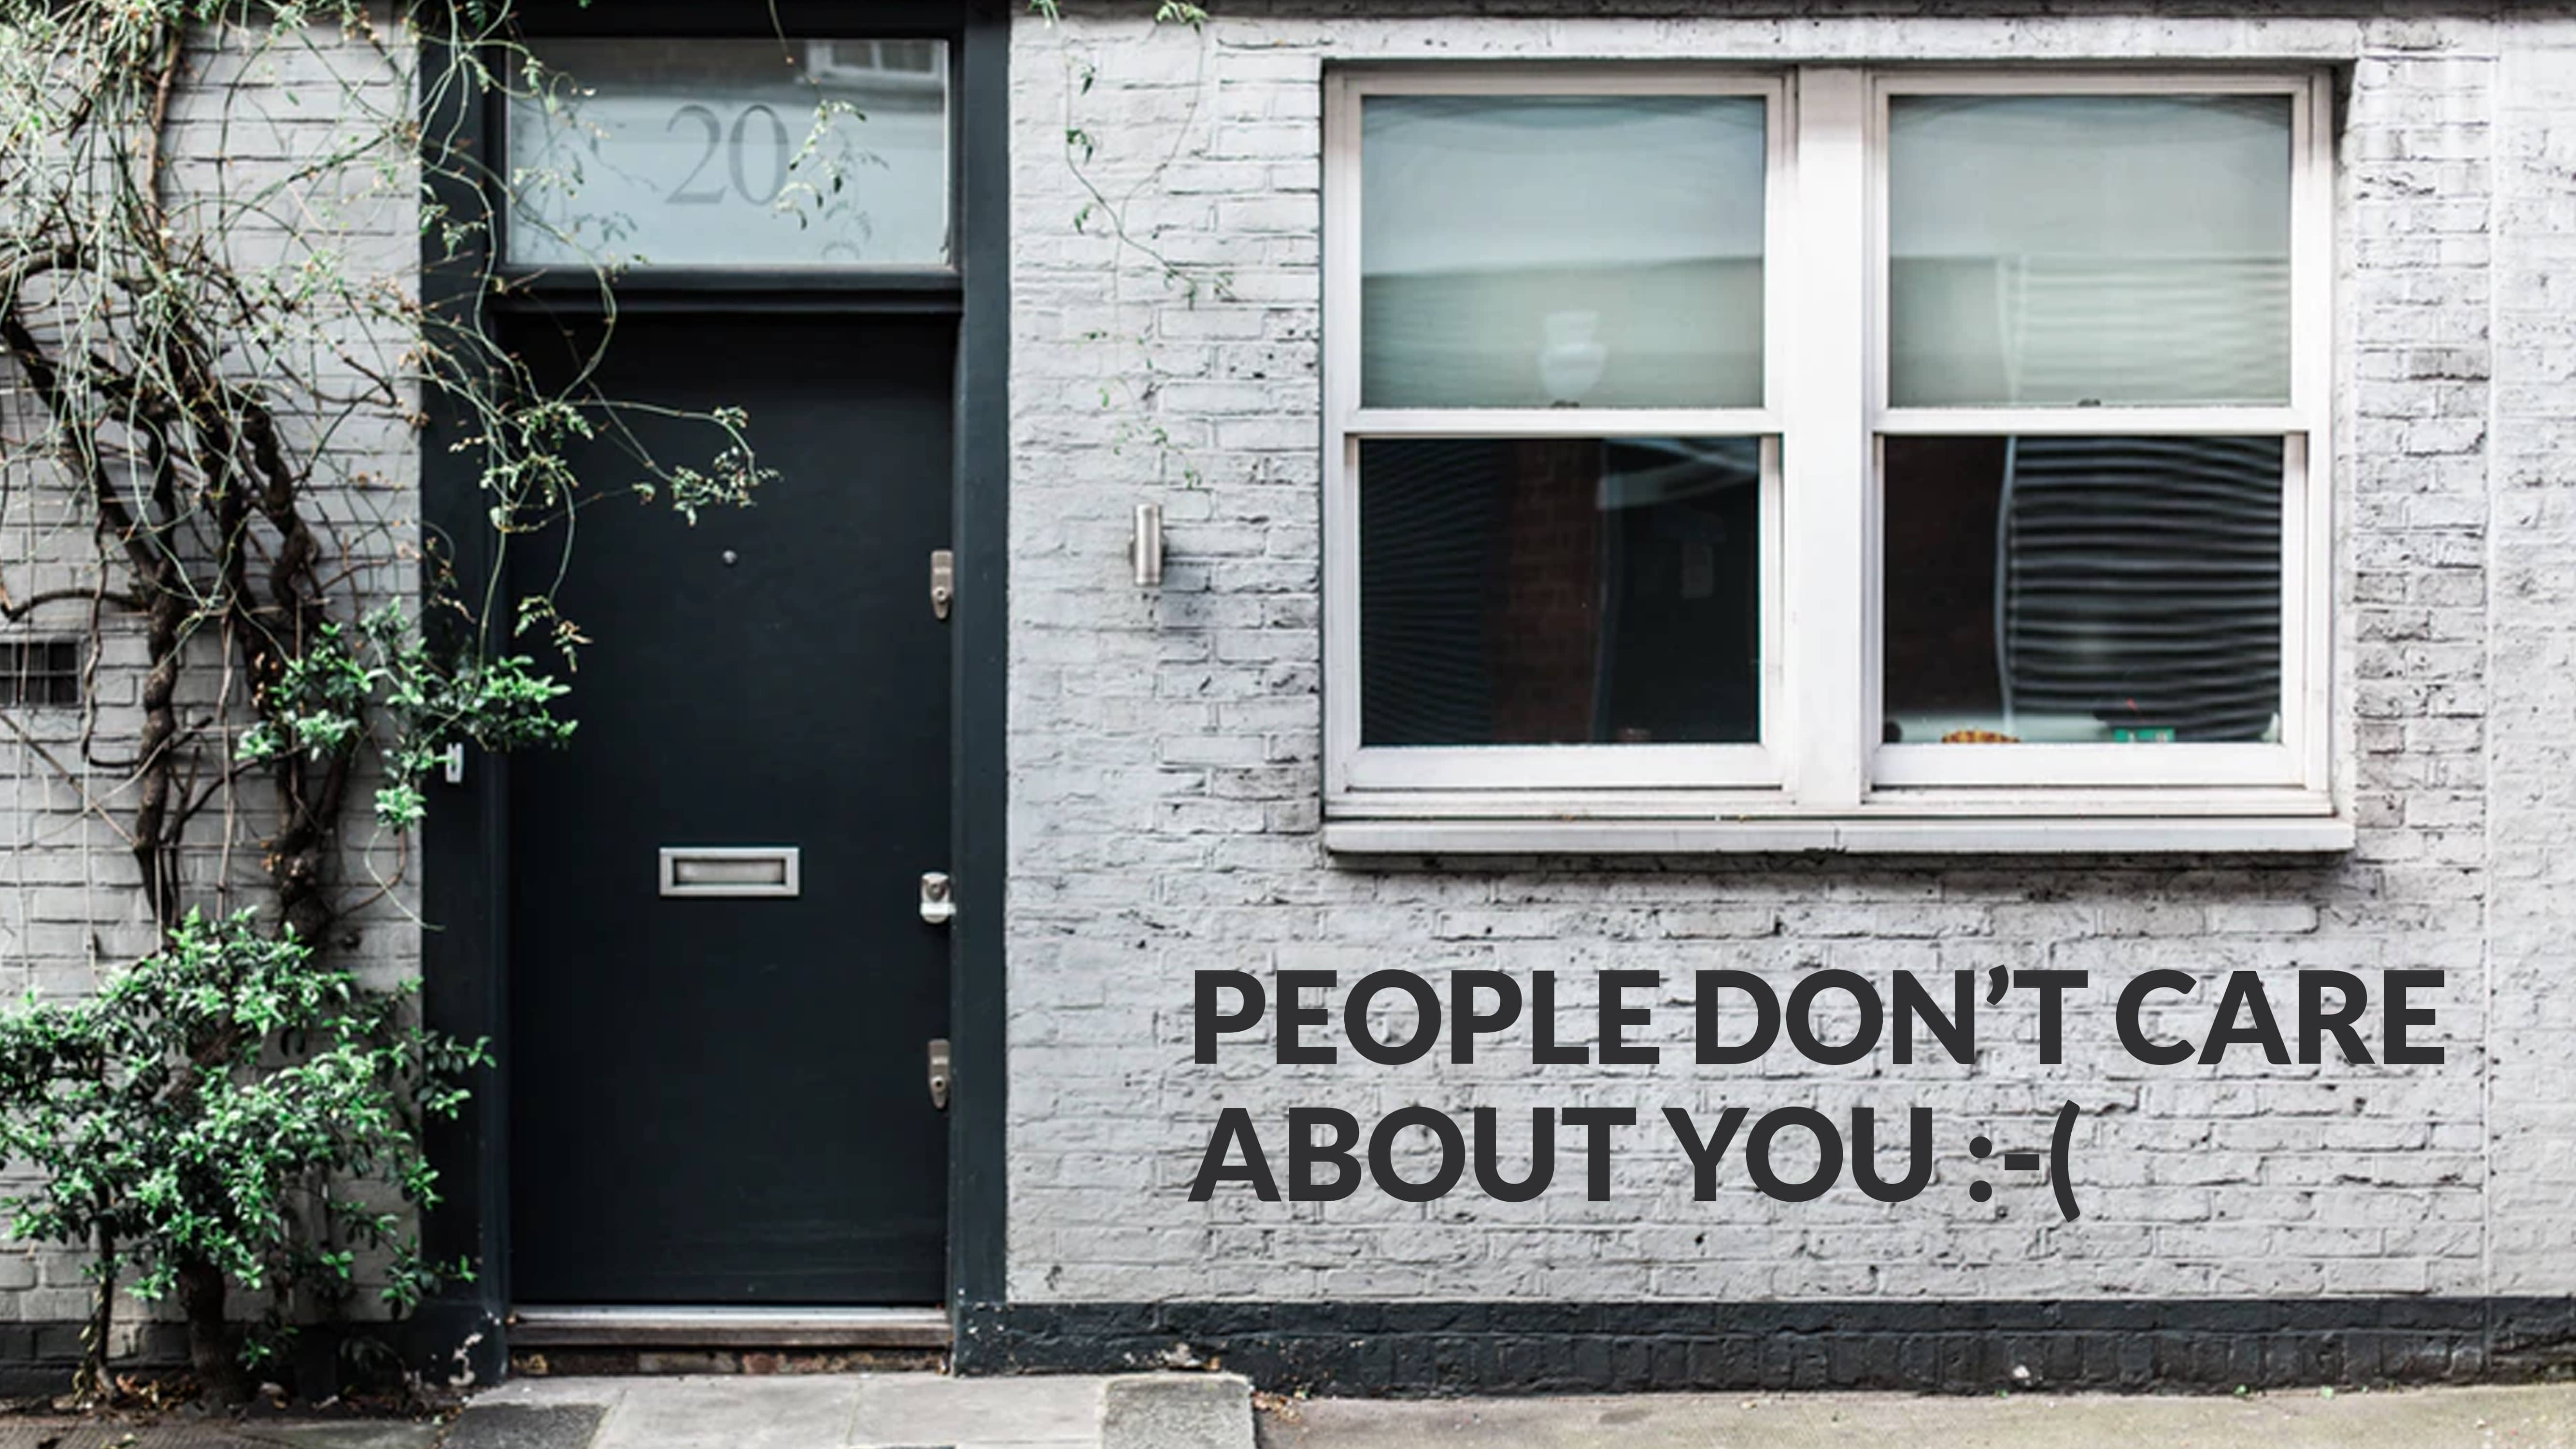 People don't care about you :-(